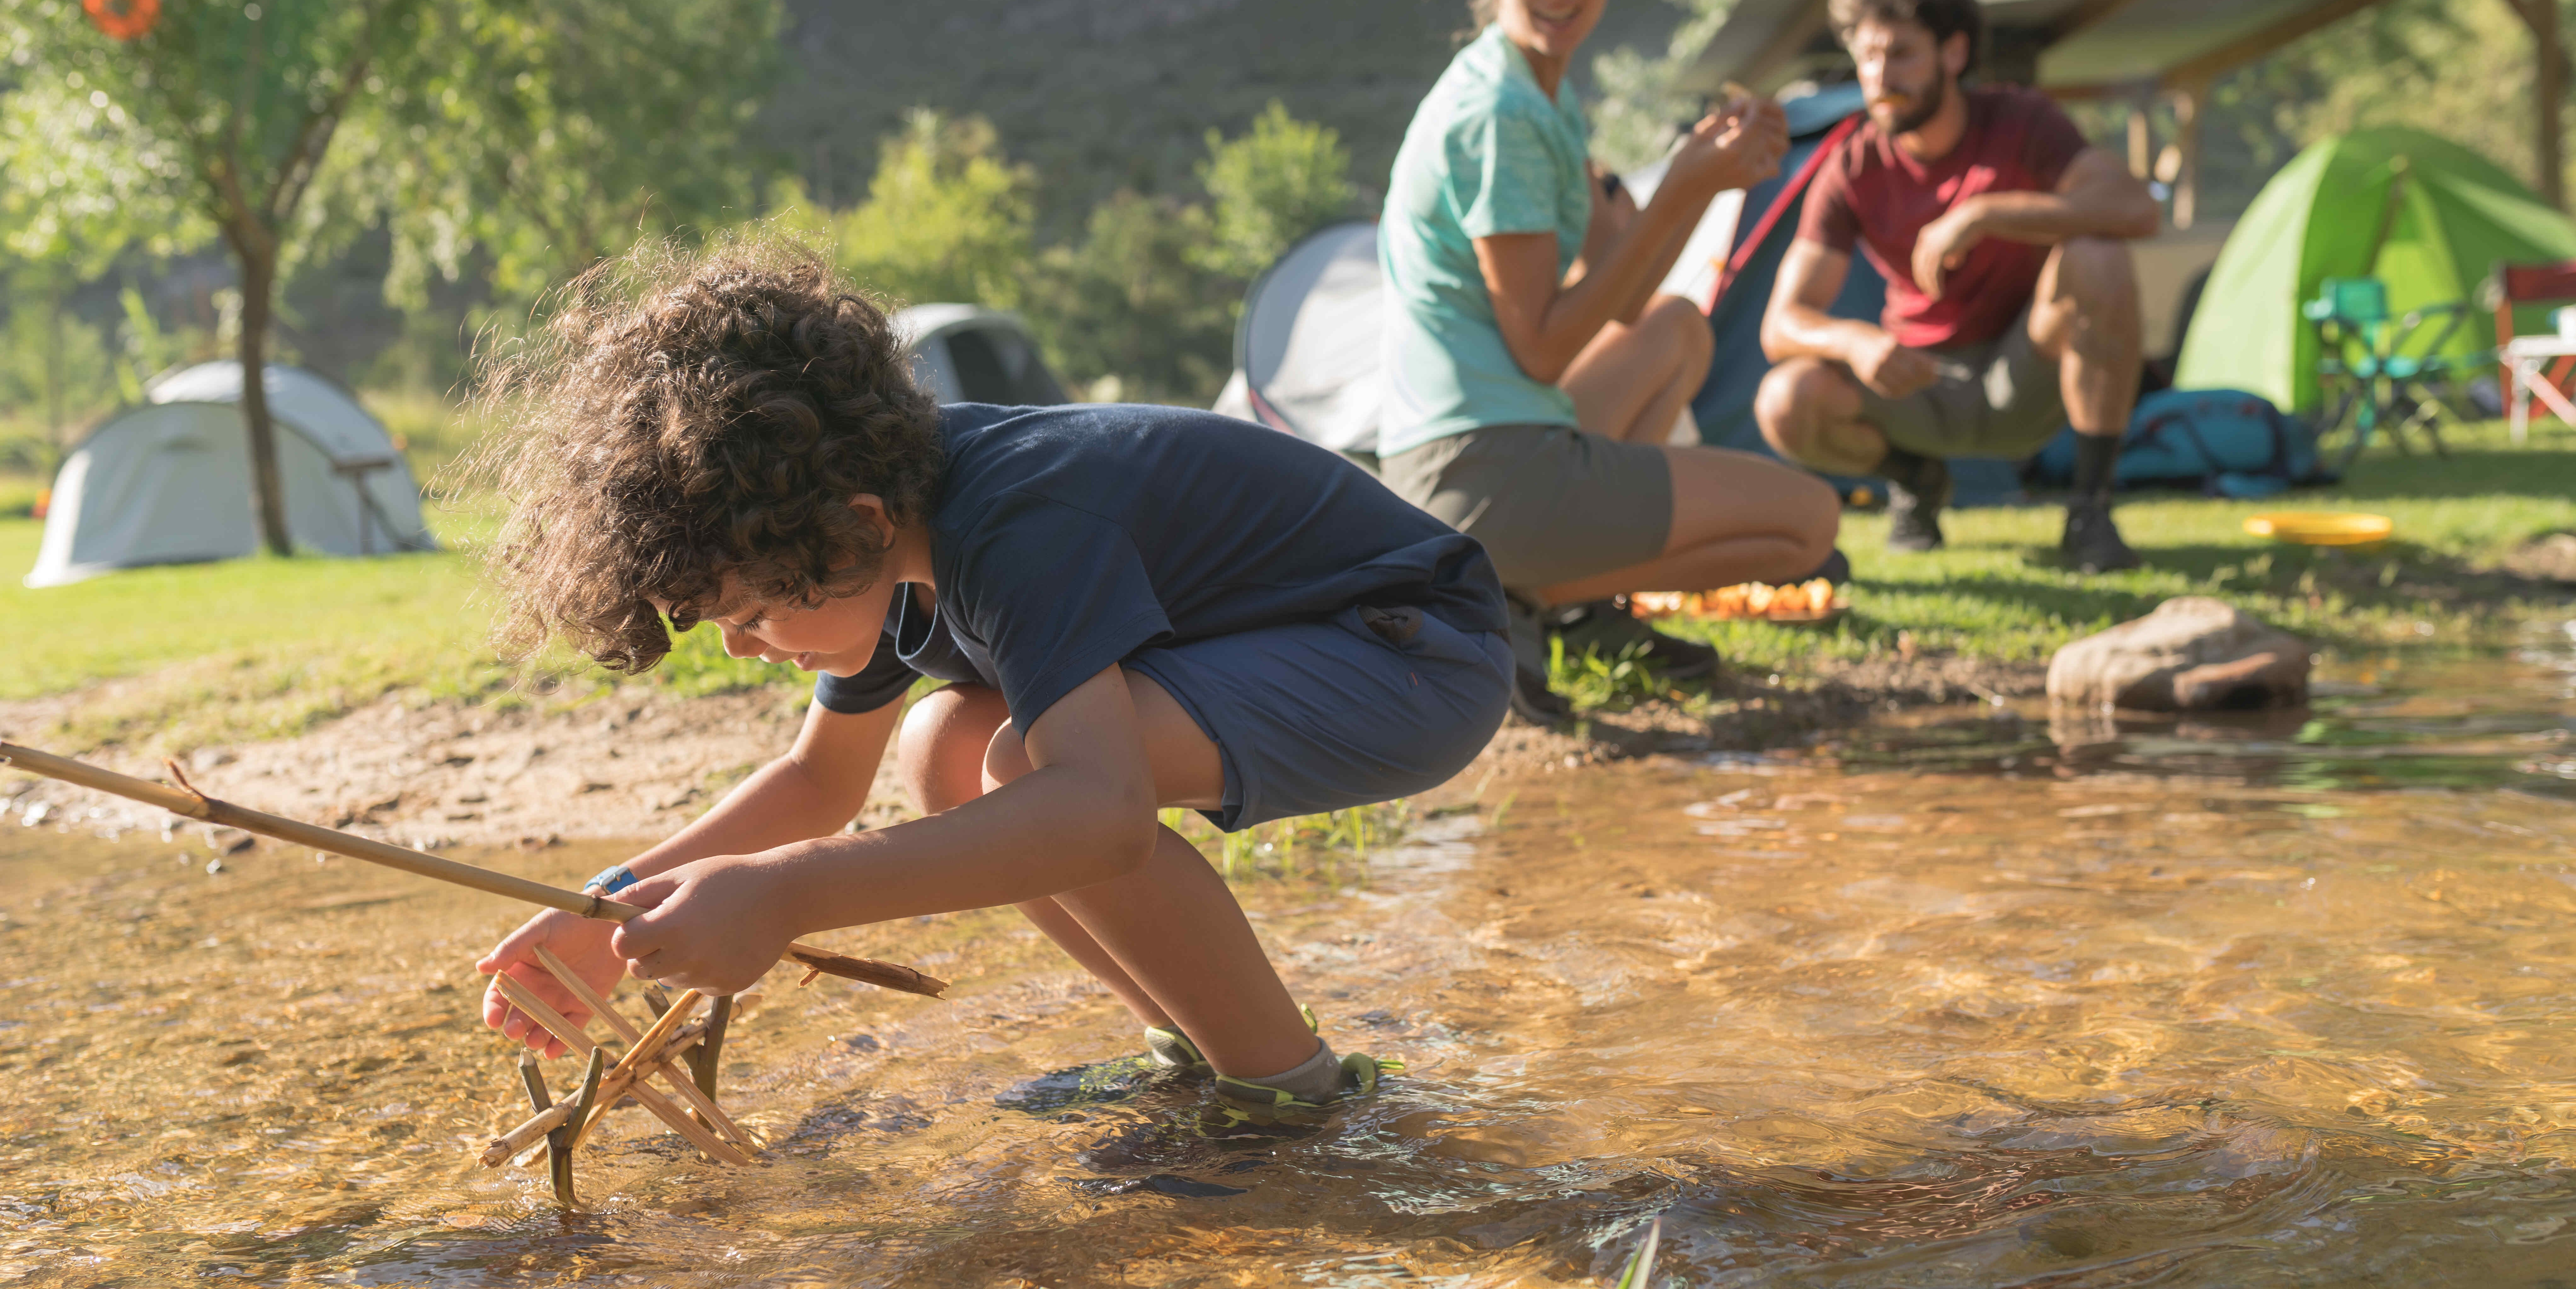 Fun Campsite Games For The Kids